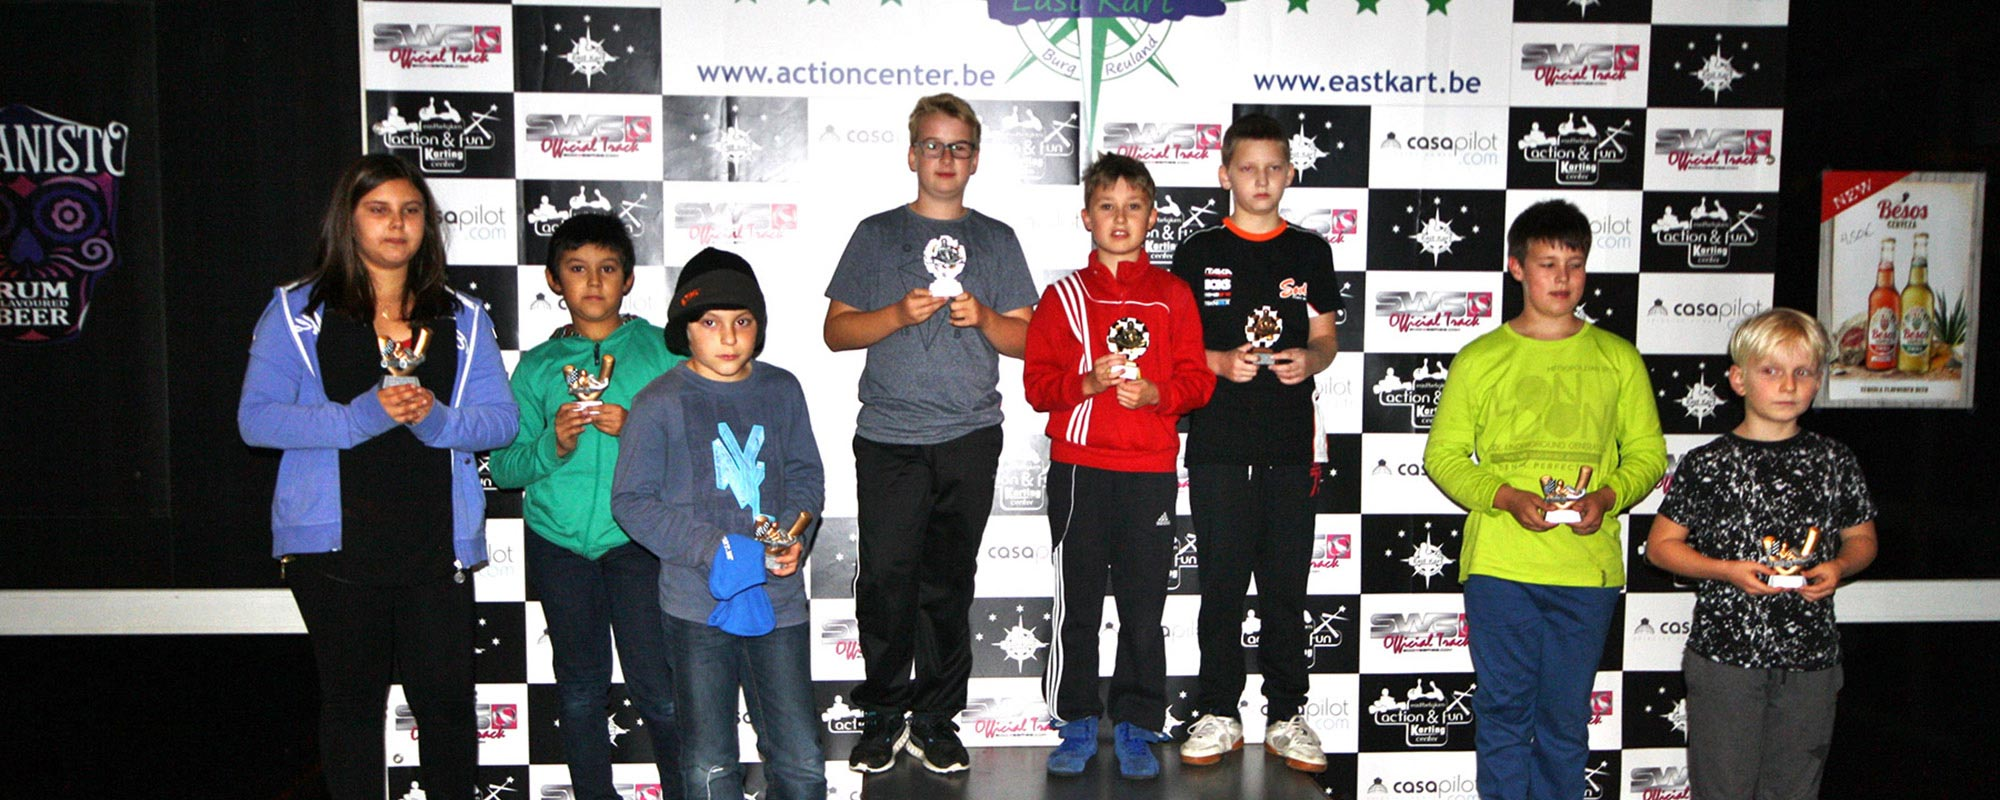 ebafkc-juniorkarting-2000x800-24